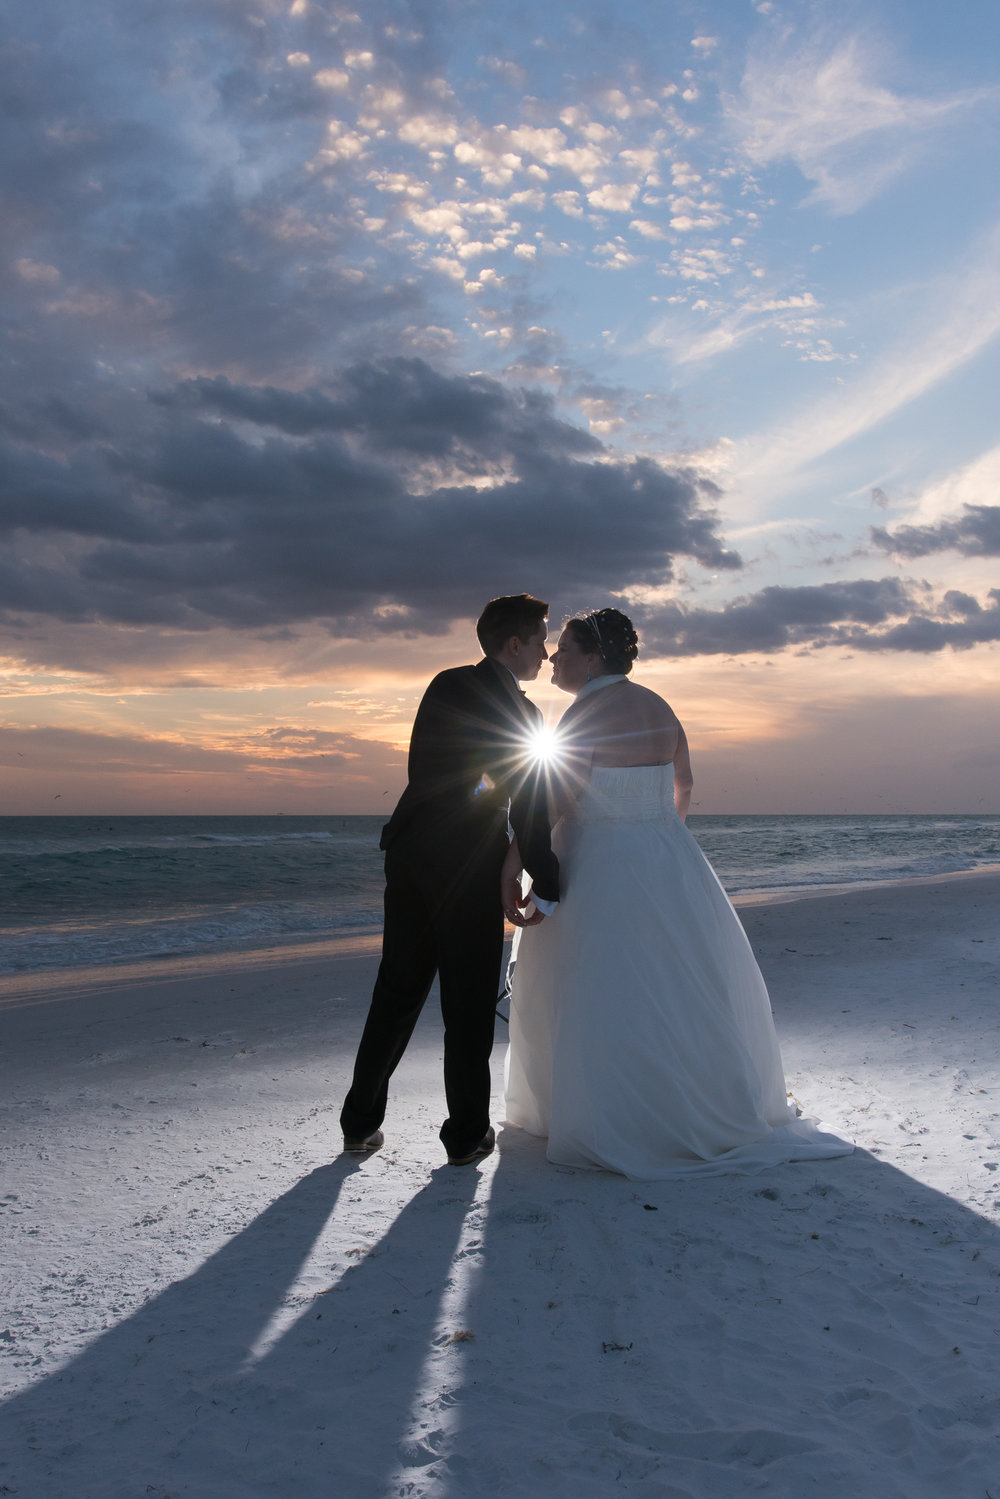 Gay-wedding-photographer, sunset-beach-wedding-photo